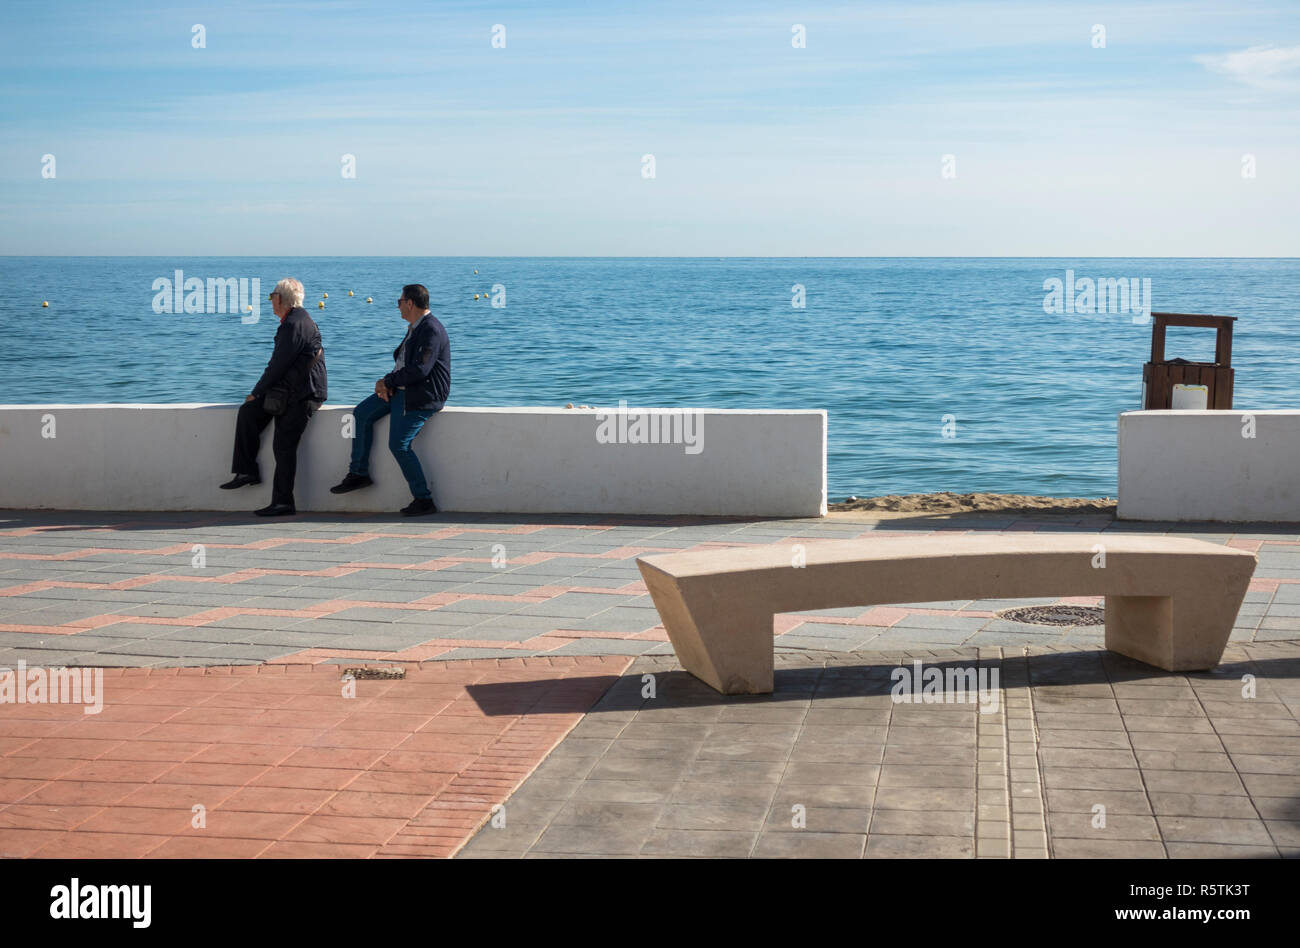 Two older men sitting at beach front promenade , with modern public bench in front, La Cala, Andalusia, Spain. - Stock Image